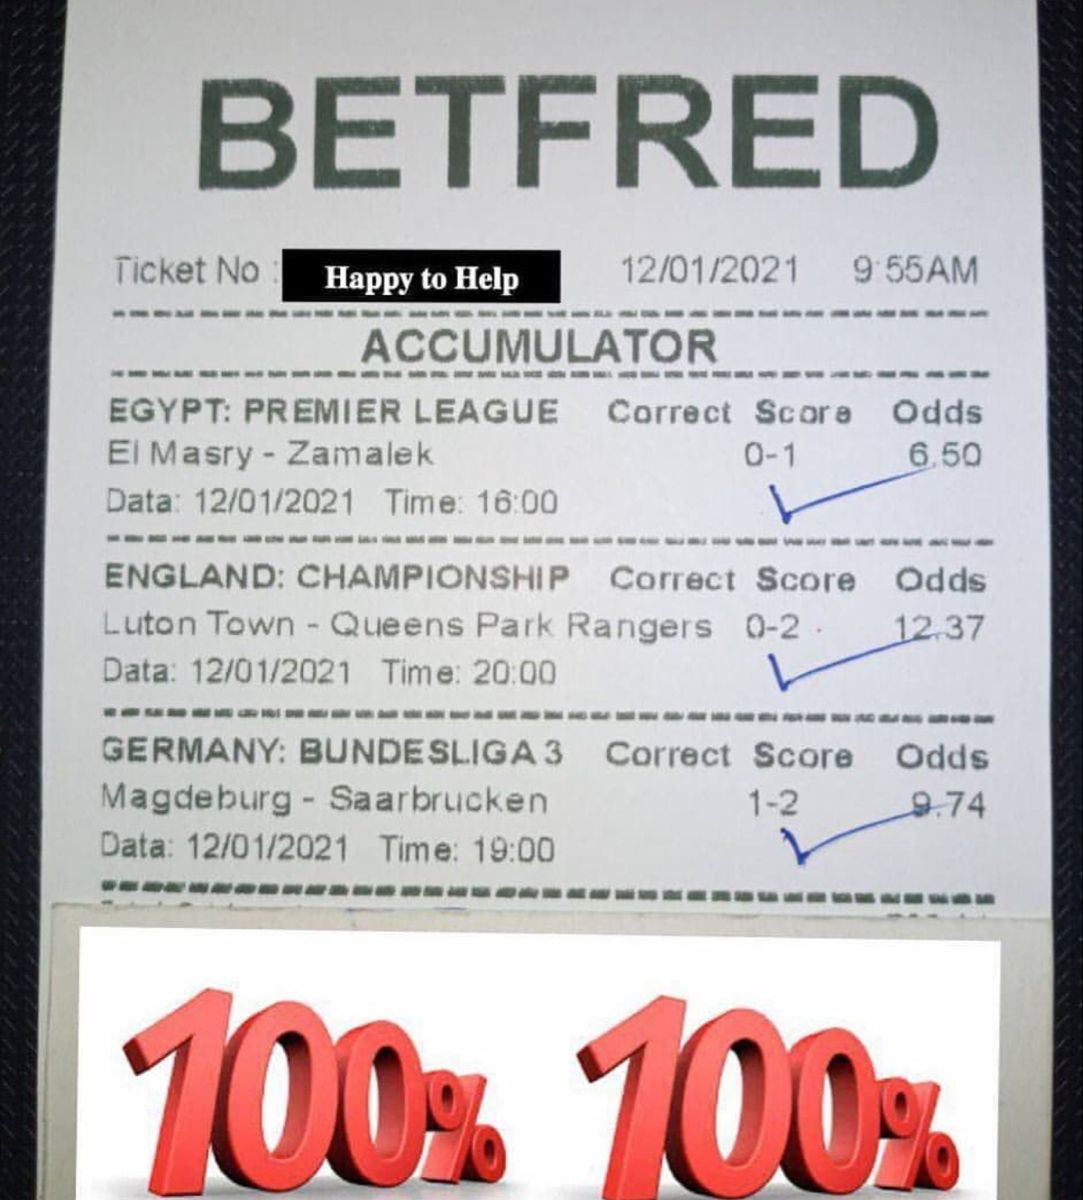 Fixed Match Tips Available Whatsapp 1 609 669 2494 Telegram Alfreddolan In 2021 Fixed Matches England Championship Football And Basketball